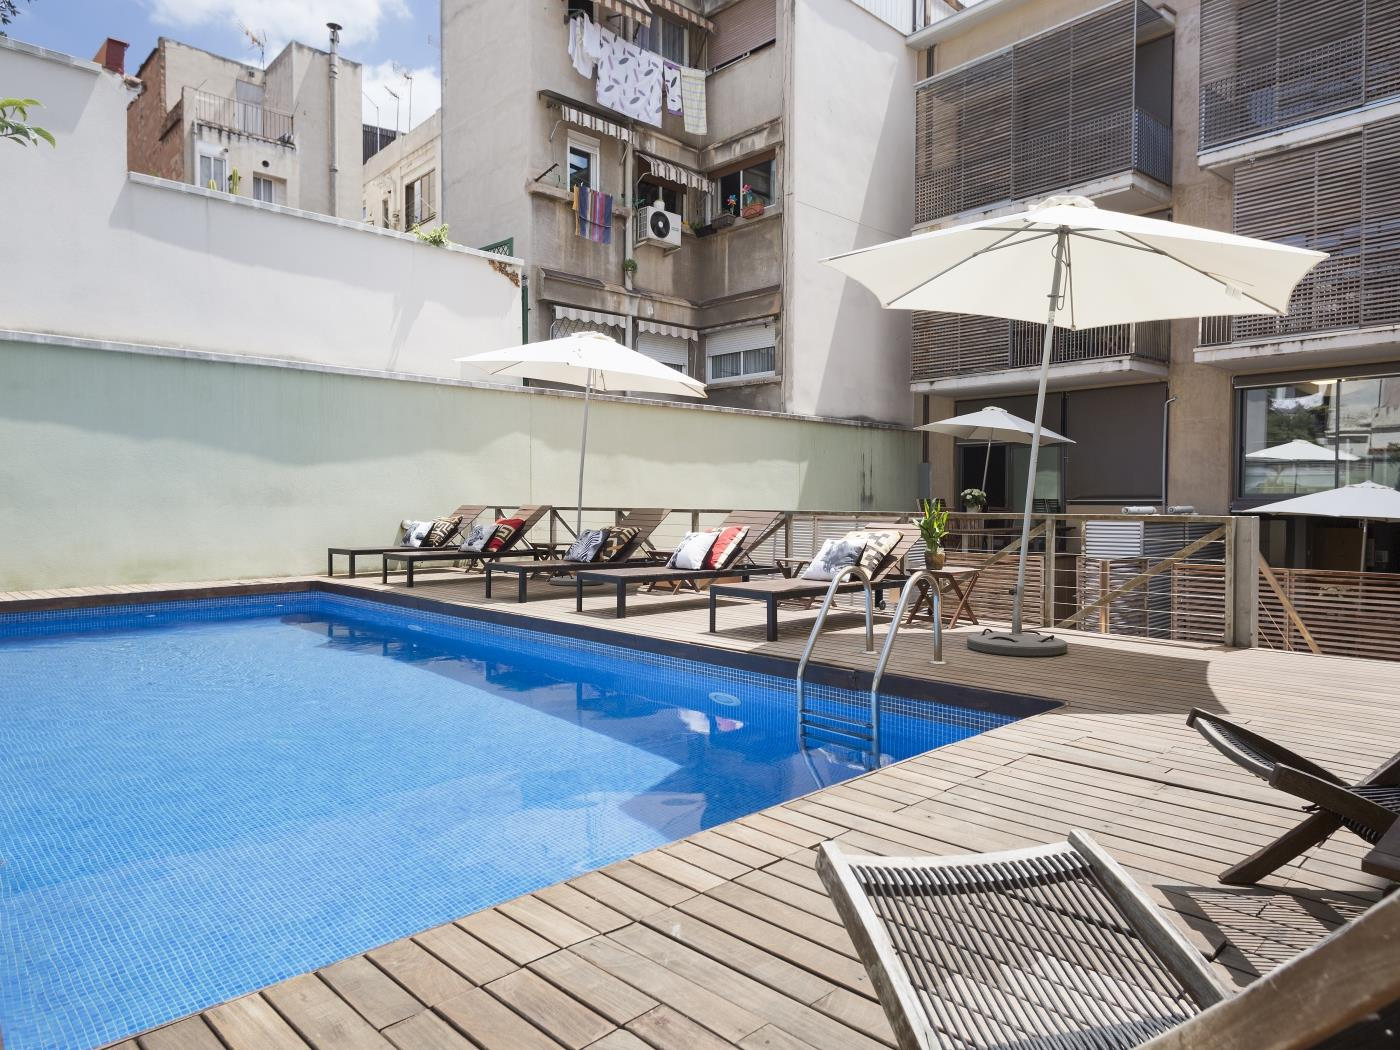 Terrace and pool apartment near the Barcelona centre for 10 - My Space Barcelona Apartments